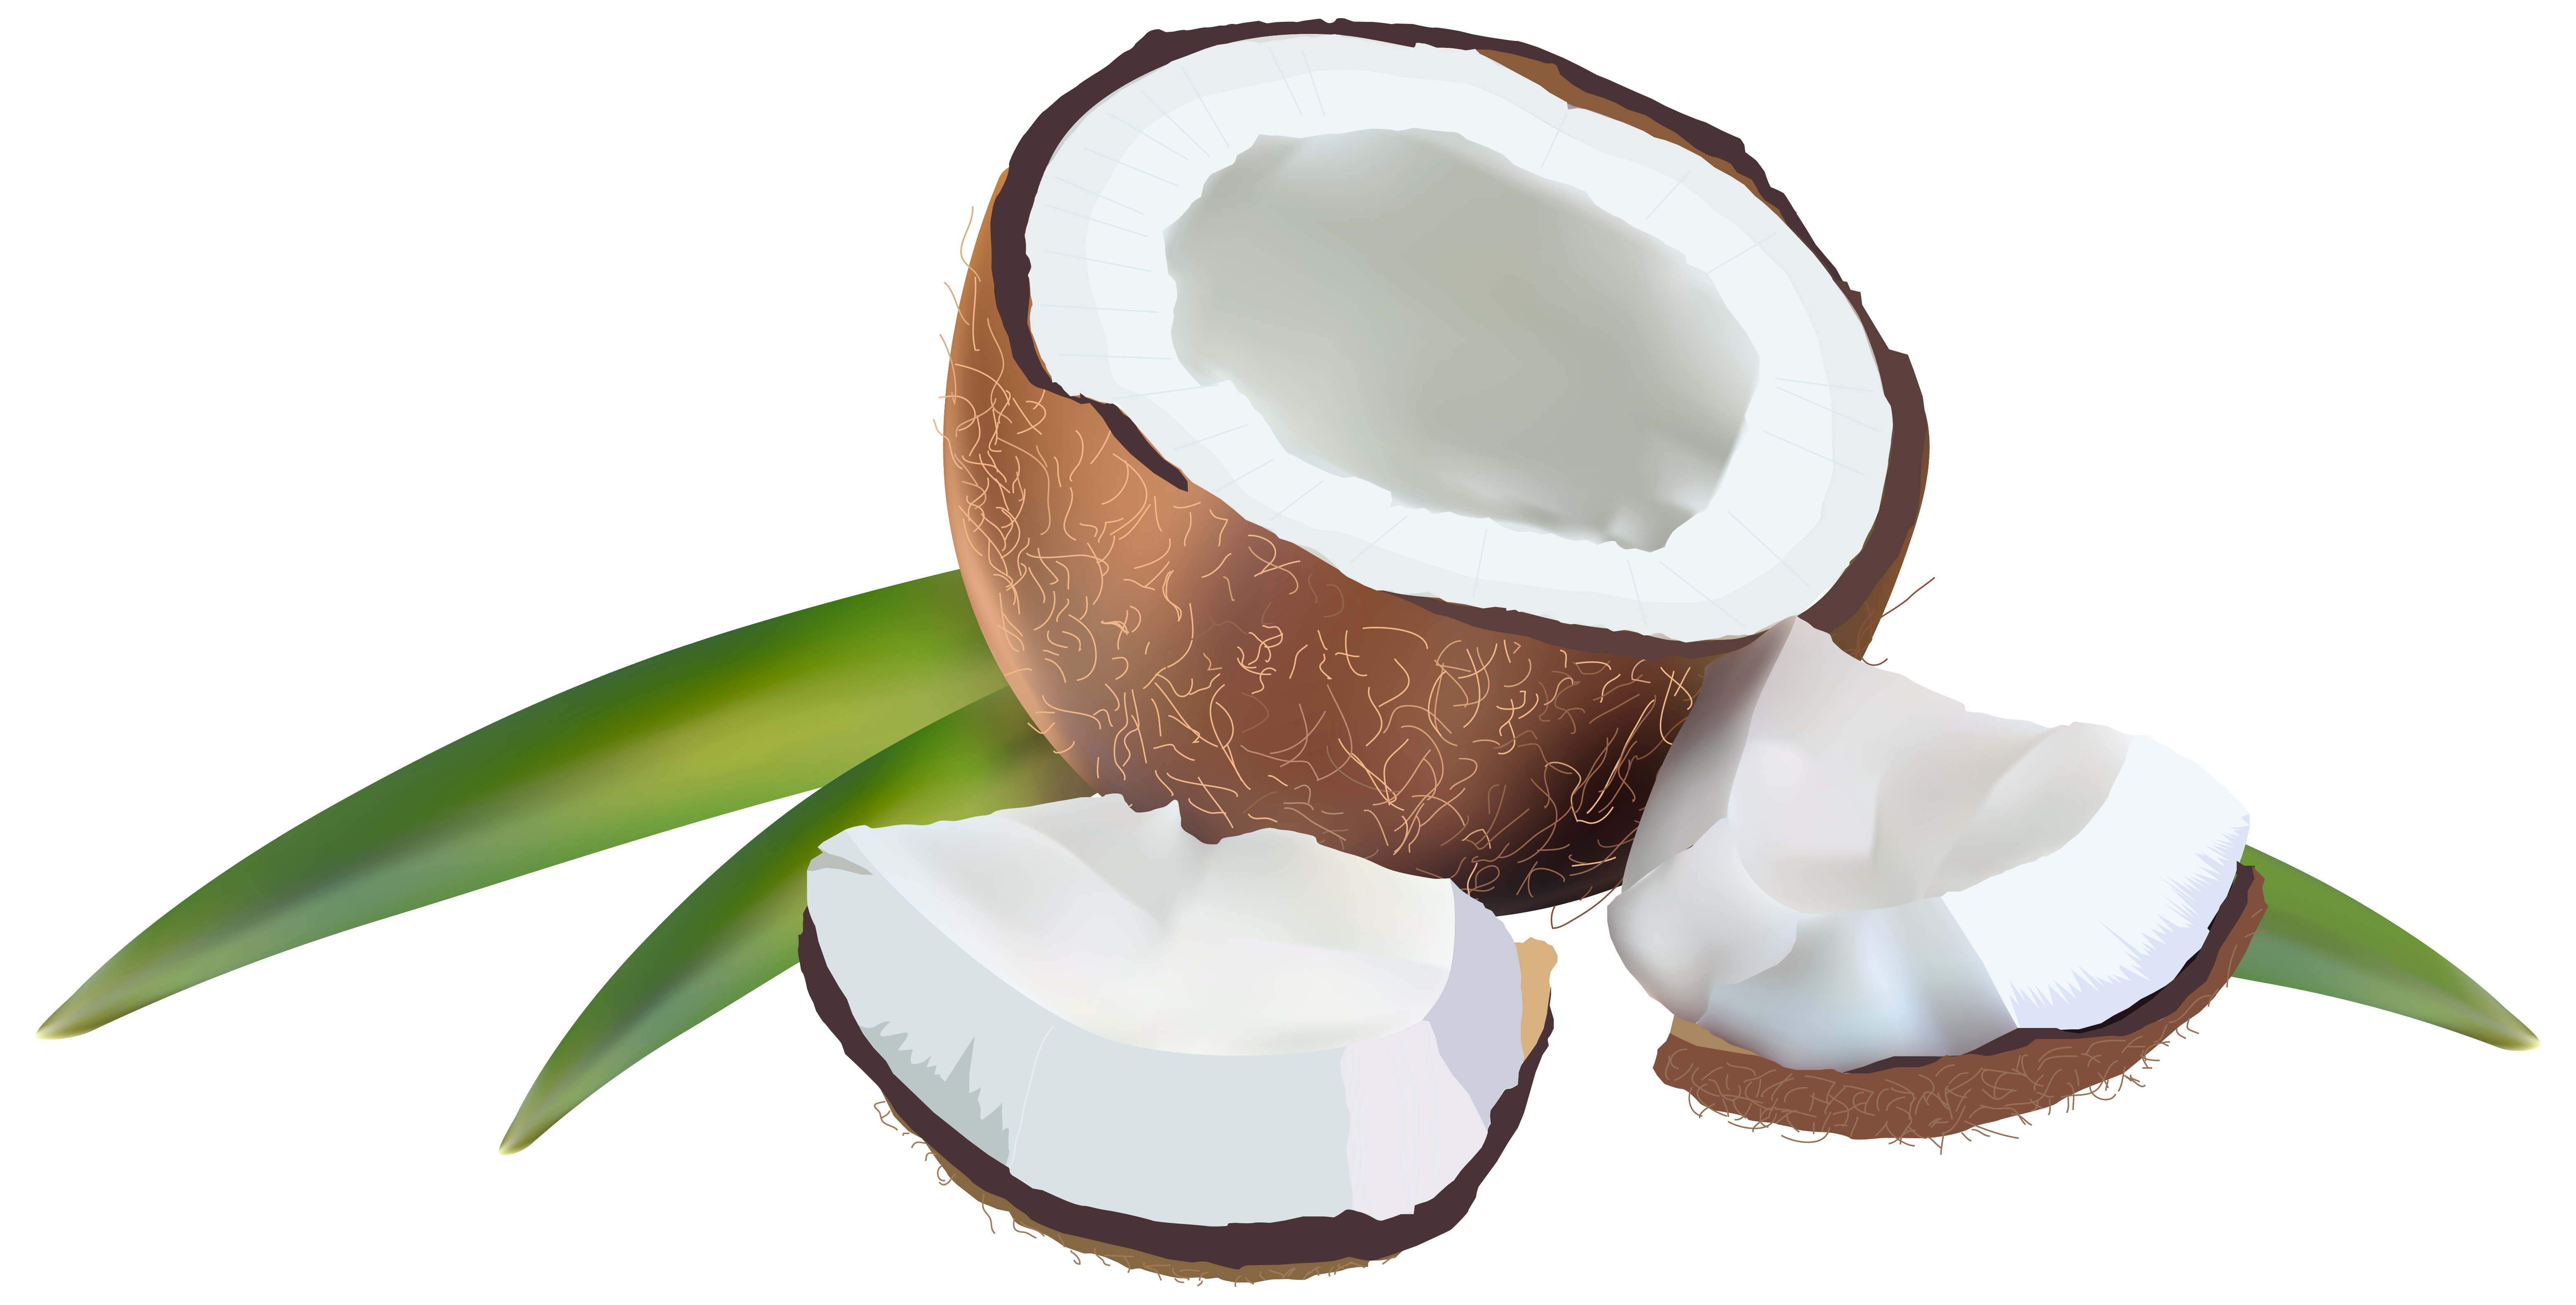 collection of background. Coconut clipart tumblr transparent